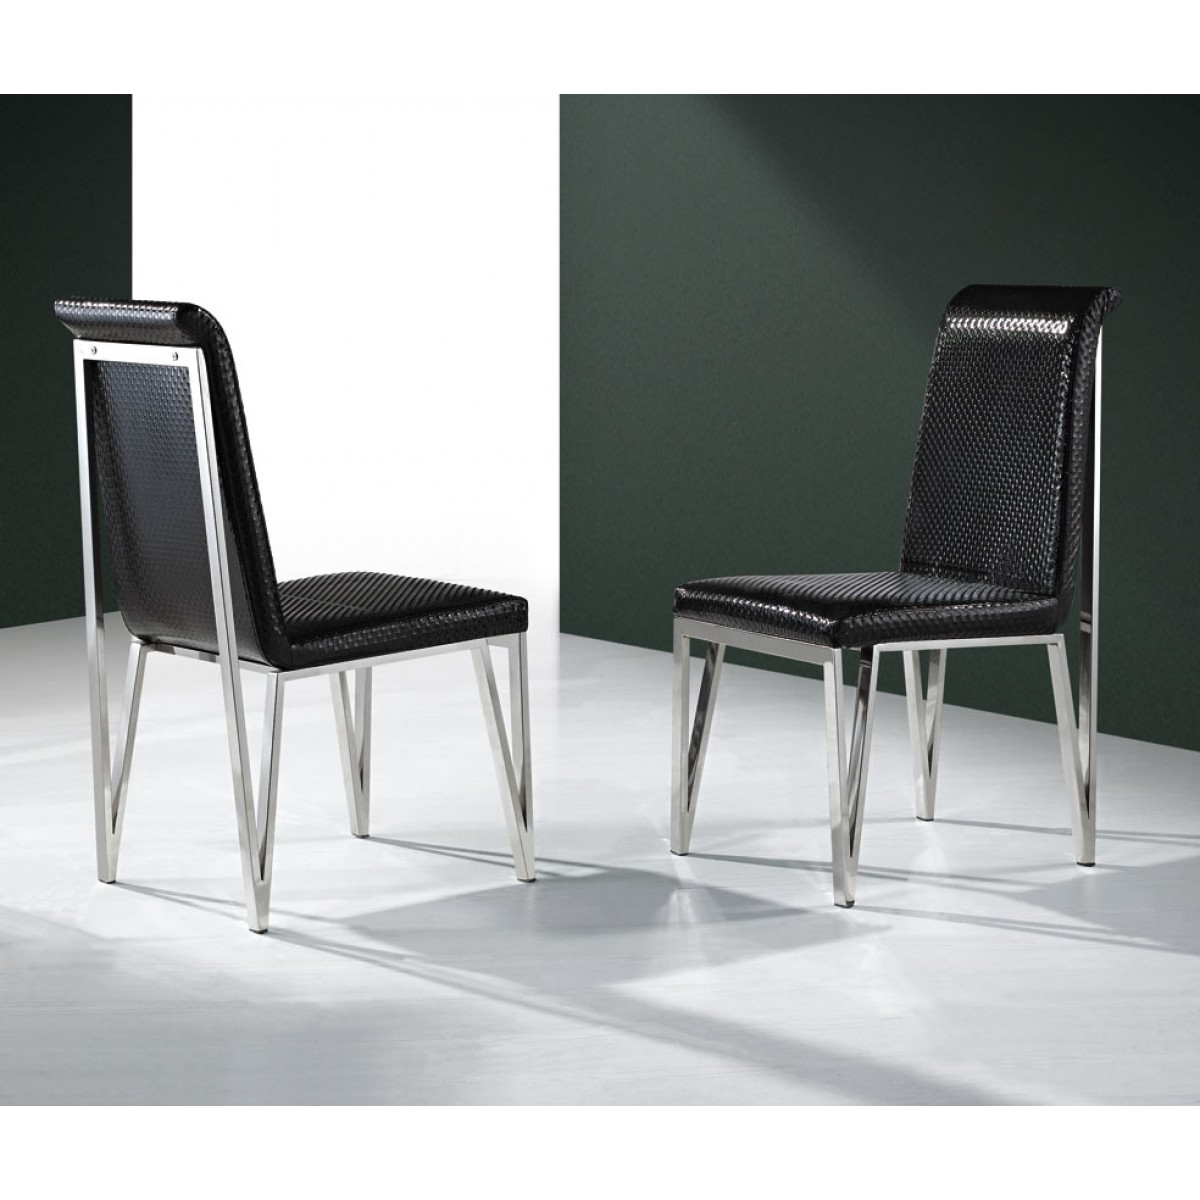 Chaises couleur updated with chaises couleur amazing with chaises couleur top chaises for Chaise cuisine couleur